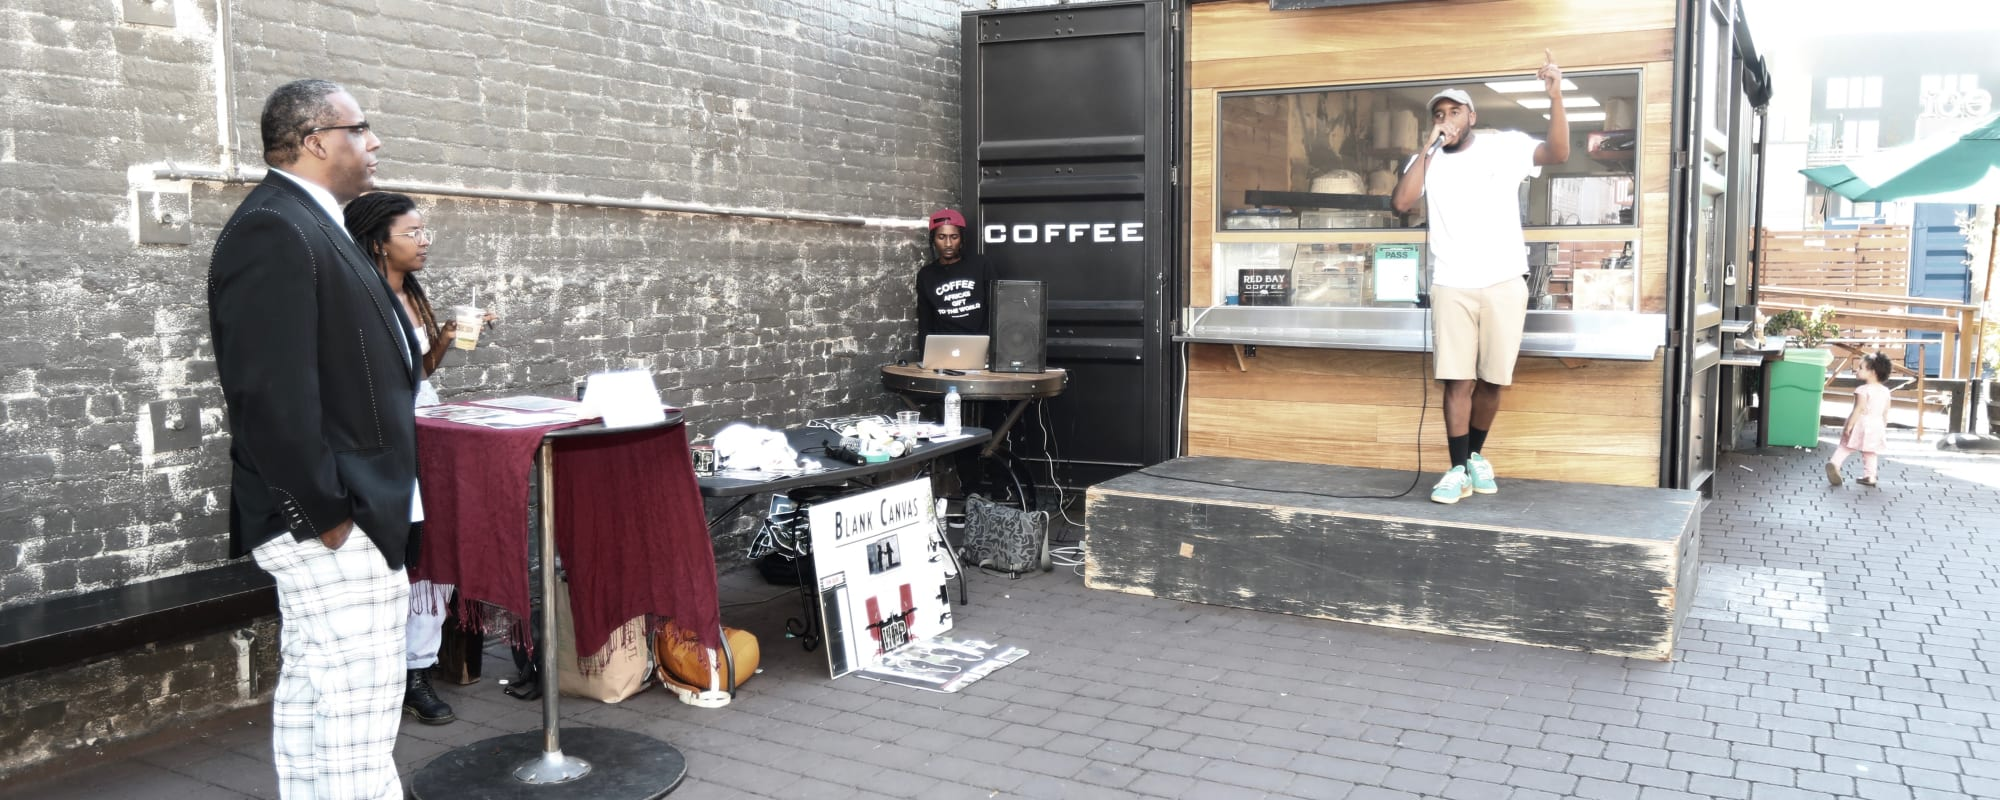 Coffee cart with an outdoor performer near The Moran in Oakland, California